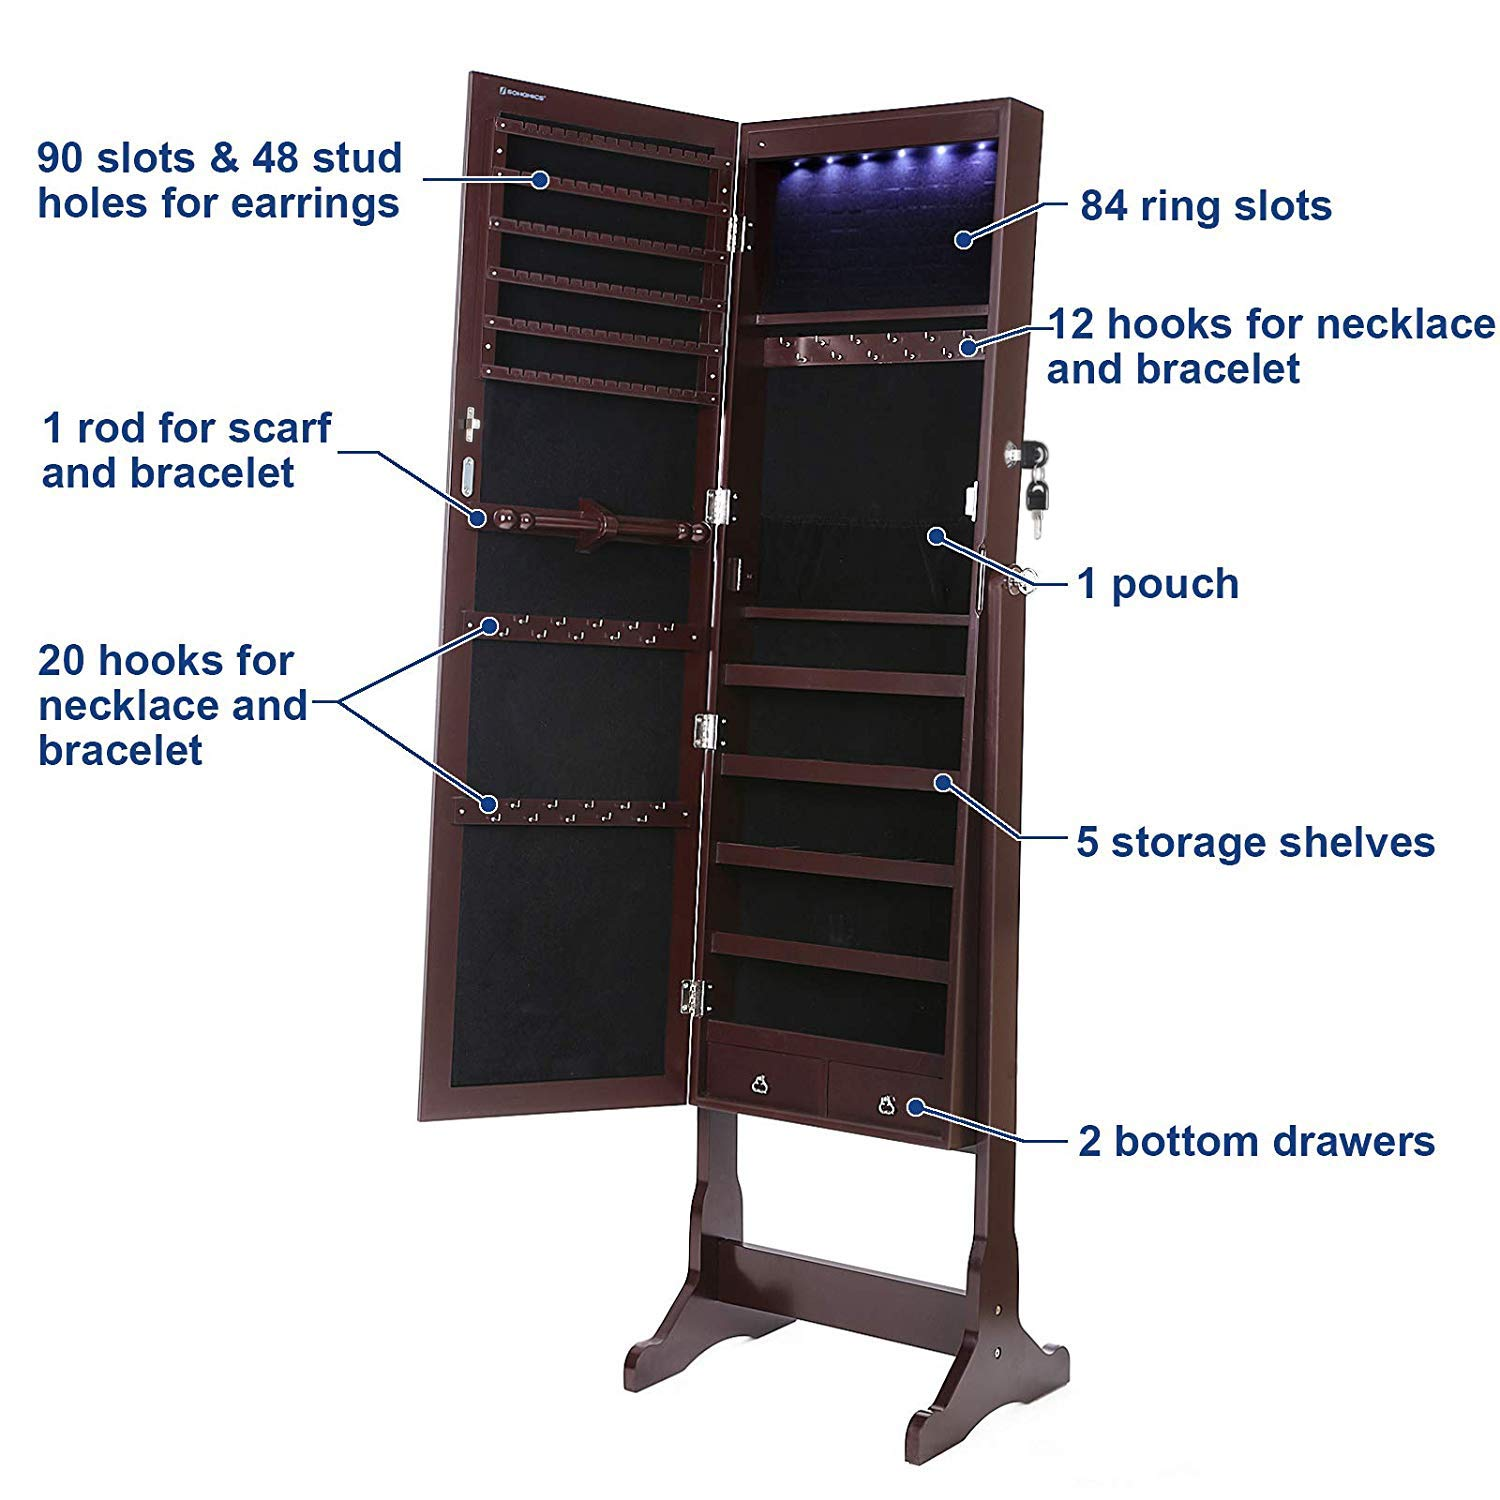 SONGMICS 6 LEDs Mirror Jewelry Cabinet Lockable Standing Mirrored Jewelry Armoire Organizer 2 Drawers Brown UJJC94K by SONGMICS (Image #5)